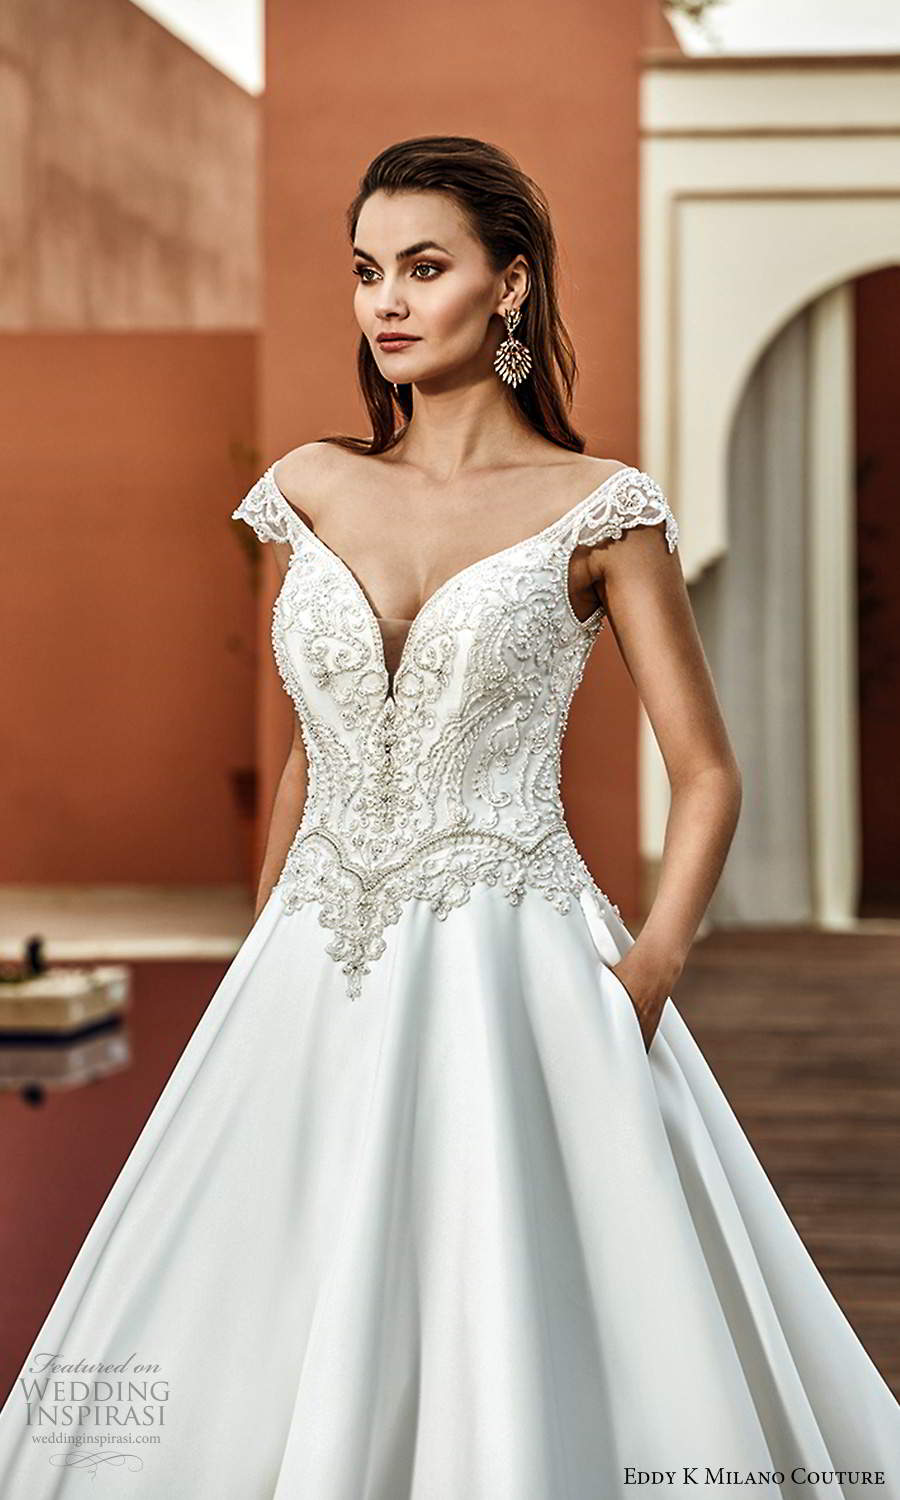 eddy k 2021 milano couture bridal cap sleeves off shoulder v neckline heavily embellished bodice a line ball gown wedding dress chapel train (7) mv